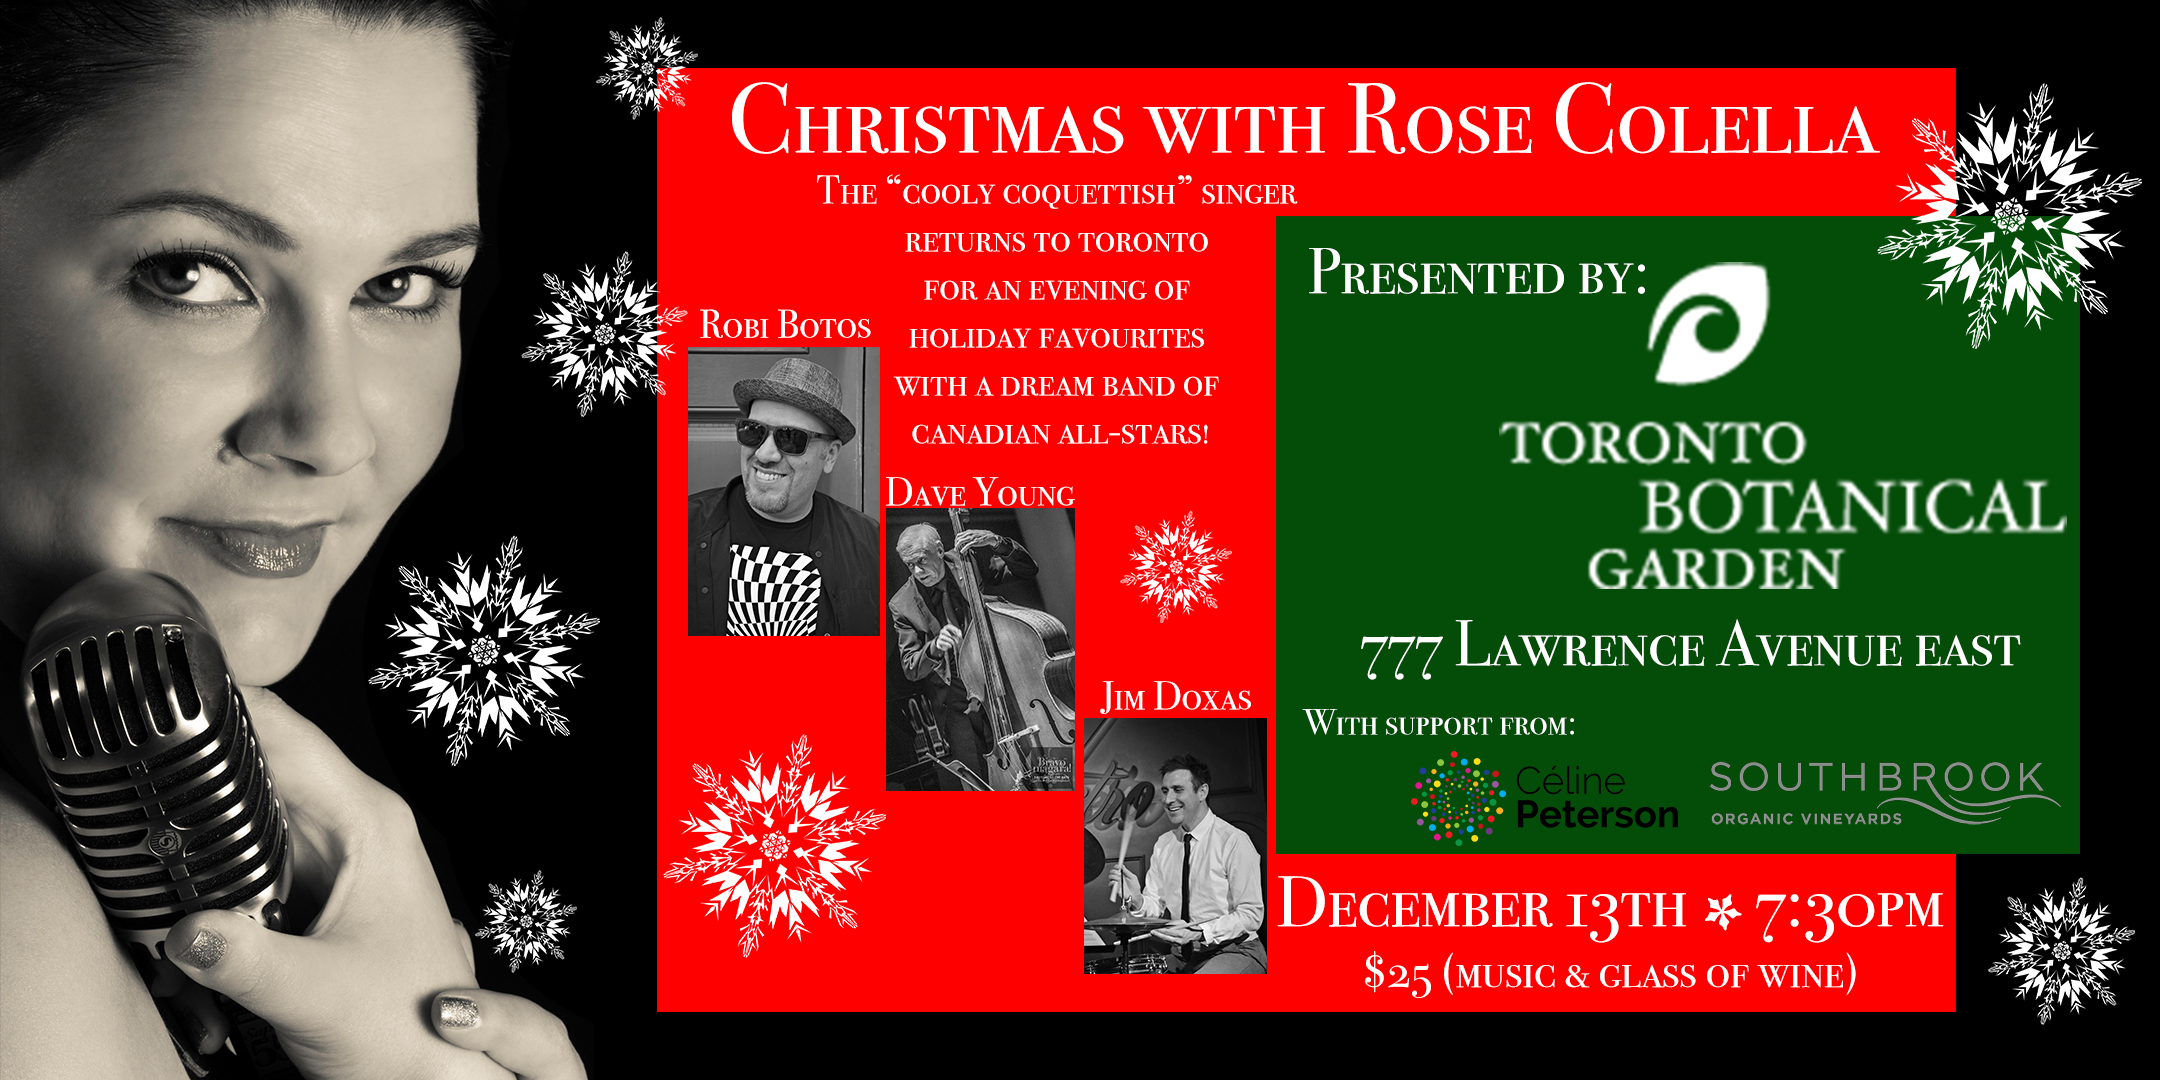 Christmas with Rose Colella